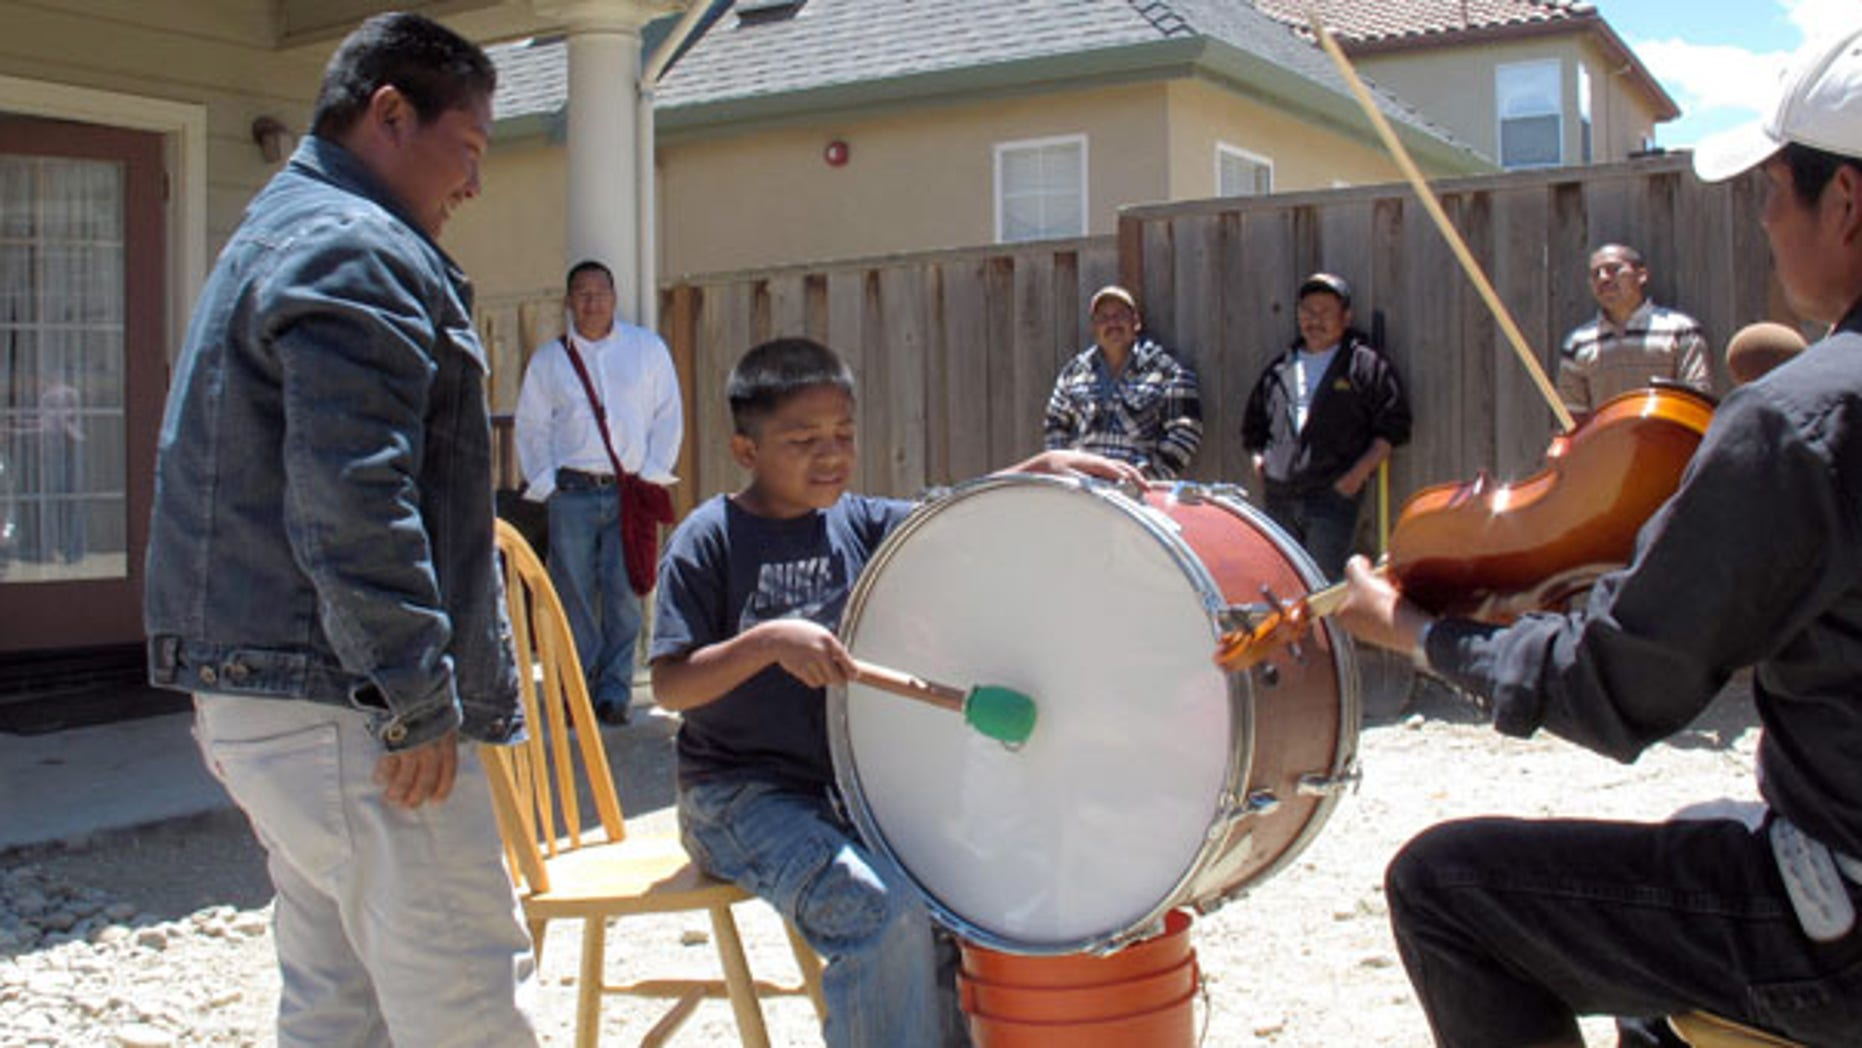 n this May 30, 2011 photo, Trique Indian children, whose families migrated from the Mexican state of Oaxaca, learn how to play traditional instruments at a community get-together in Greenfield, Calif. (AP Photo/Gosia Wozniacka)